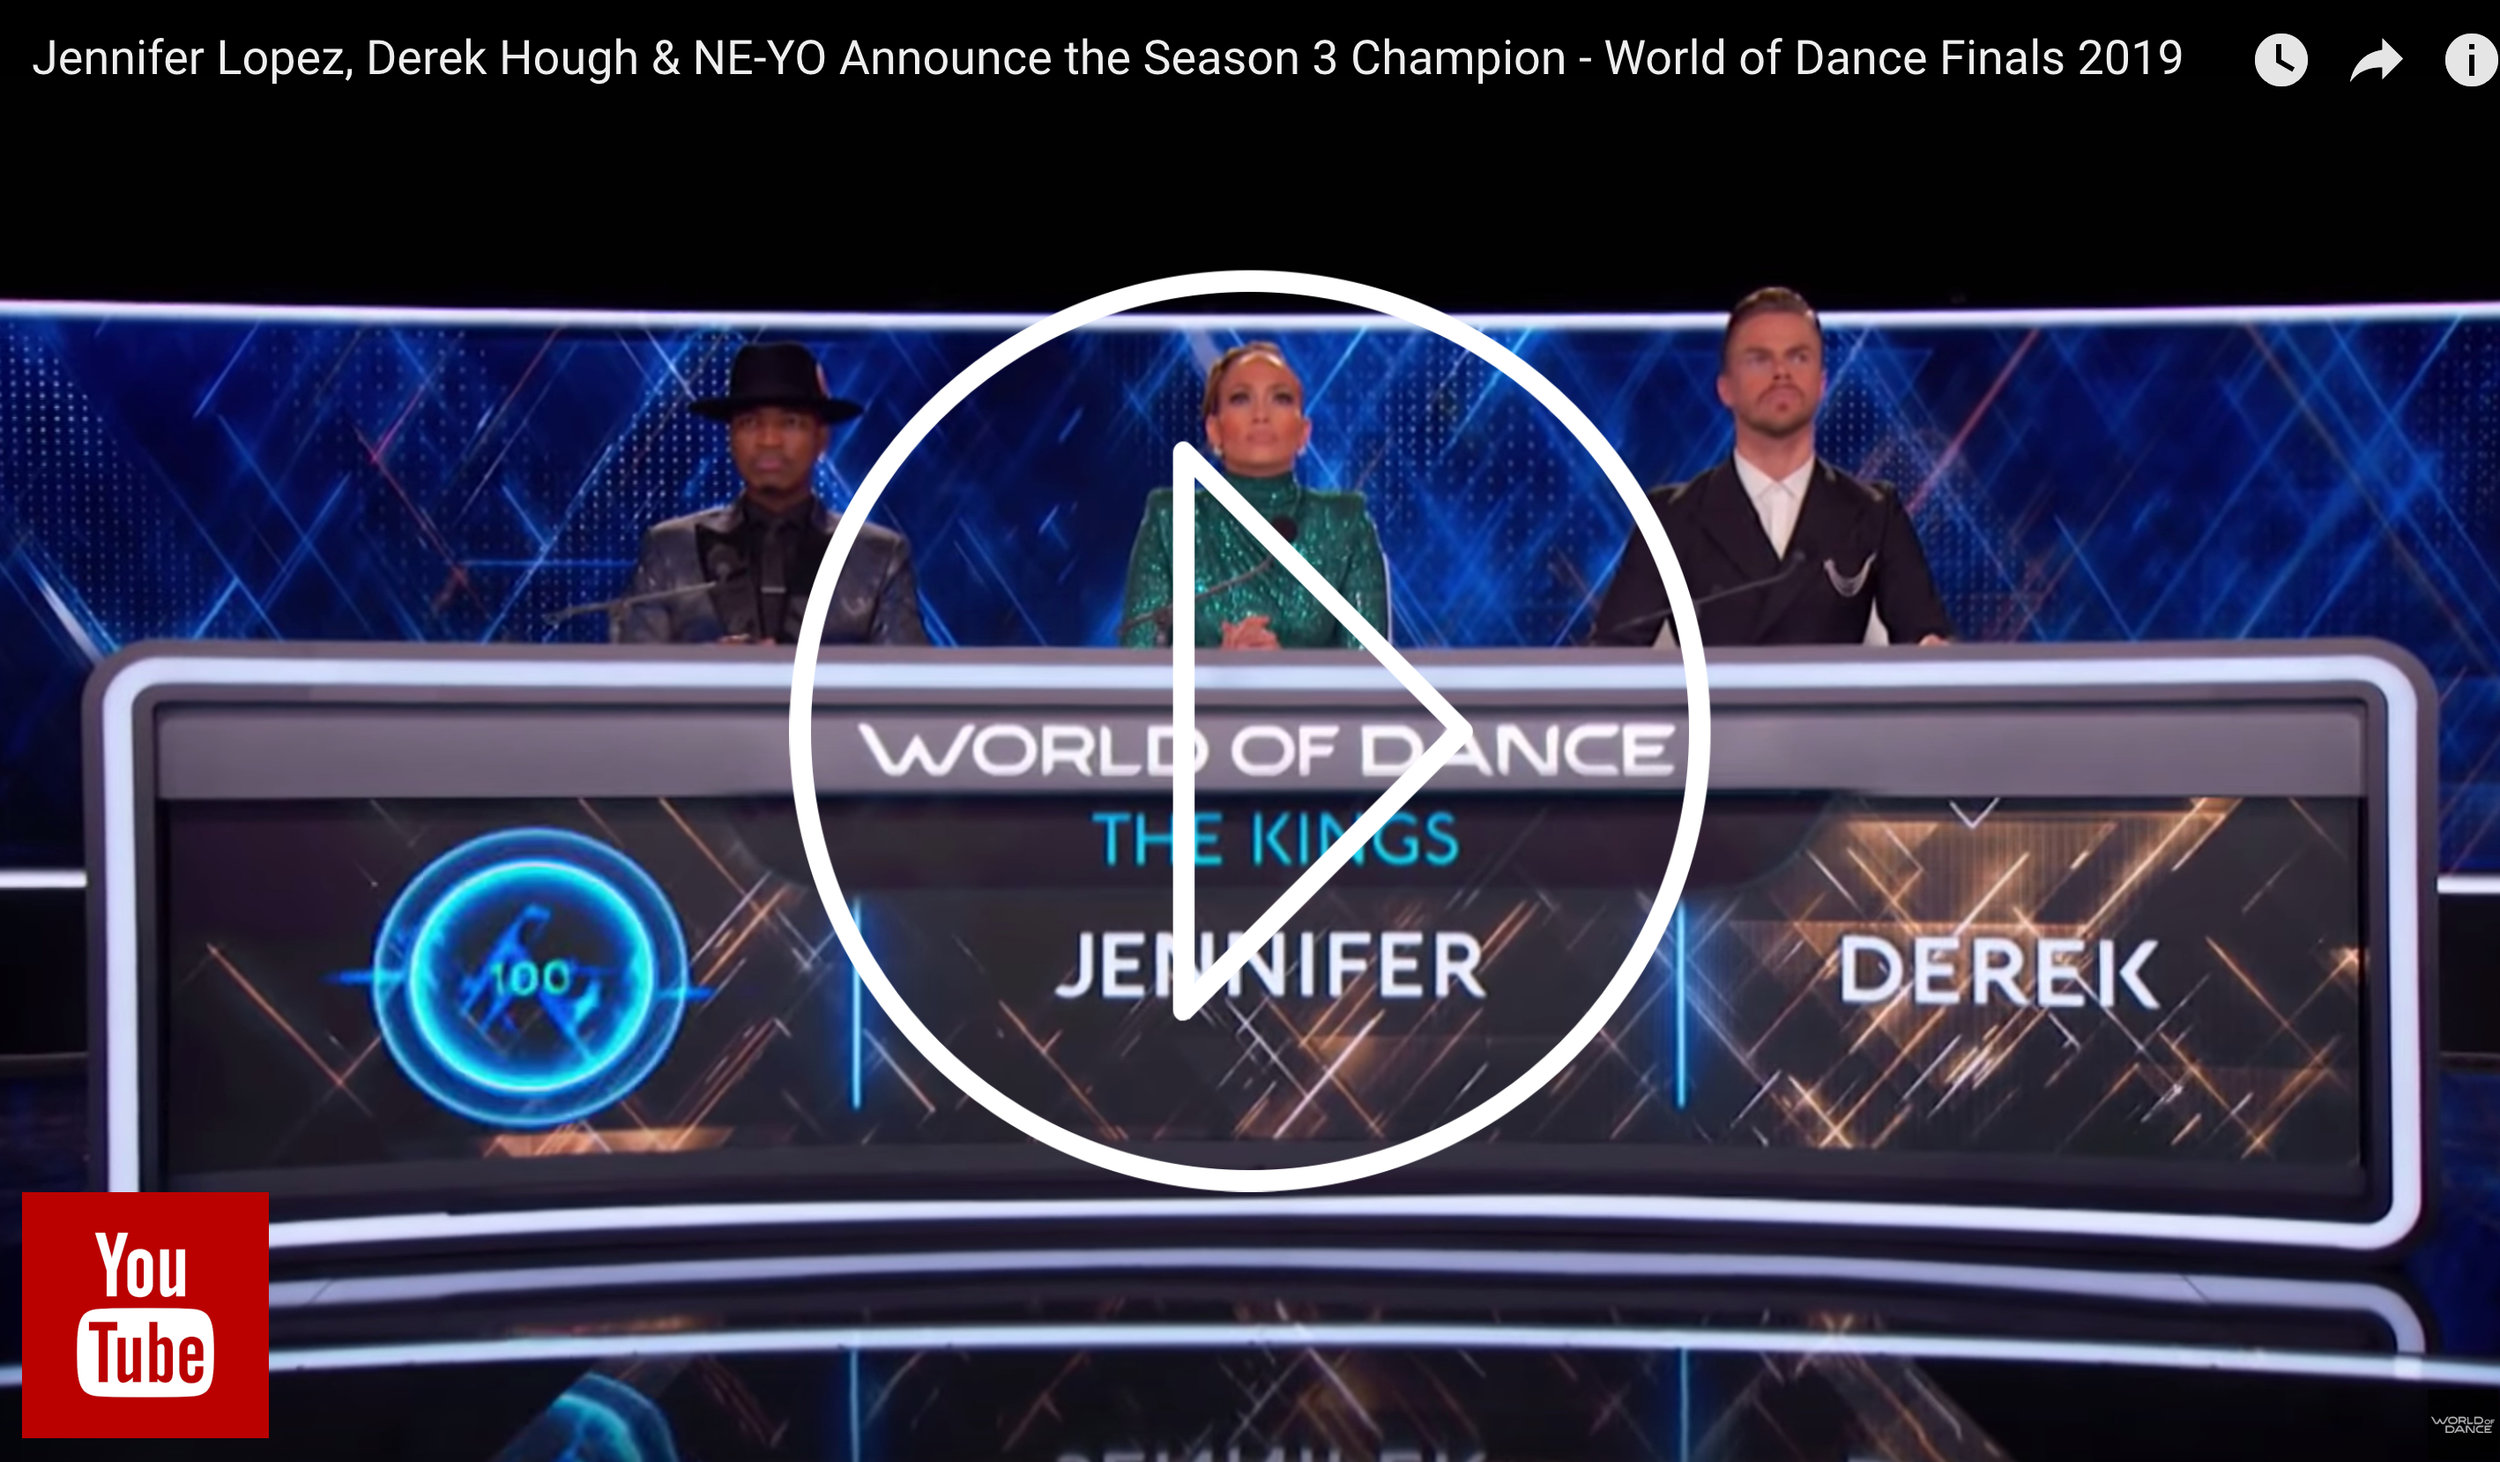 Check out Our Time in the season finale of World of Dance!